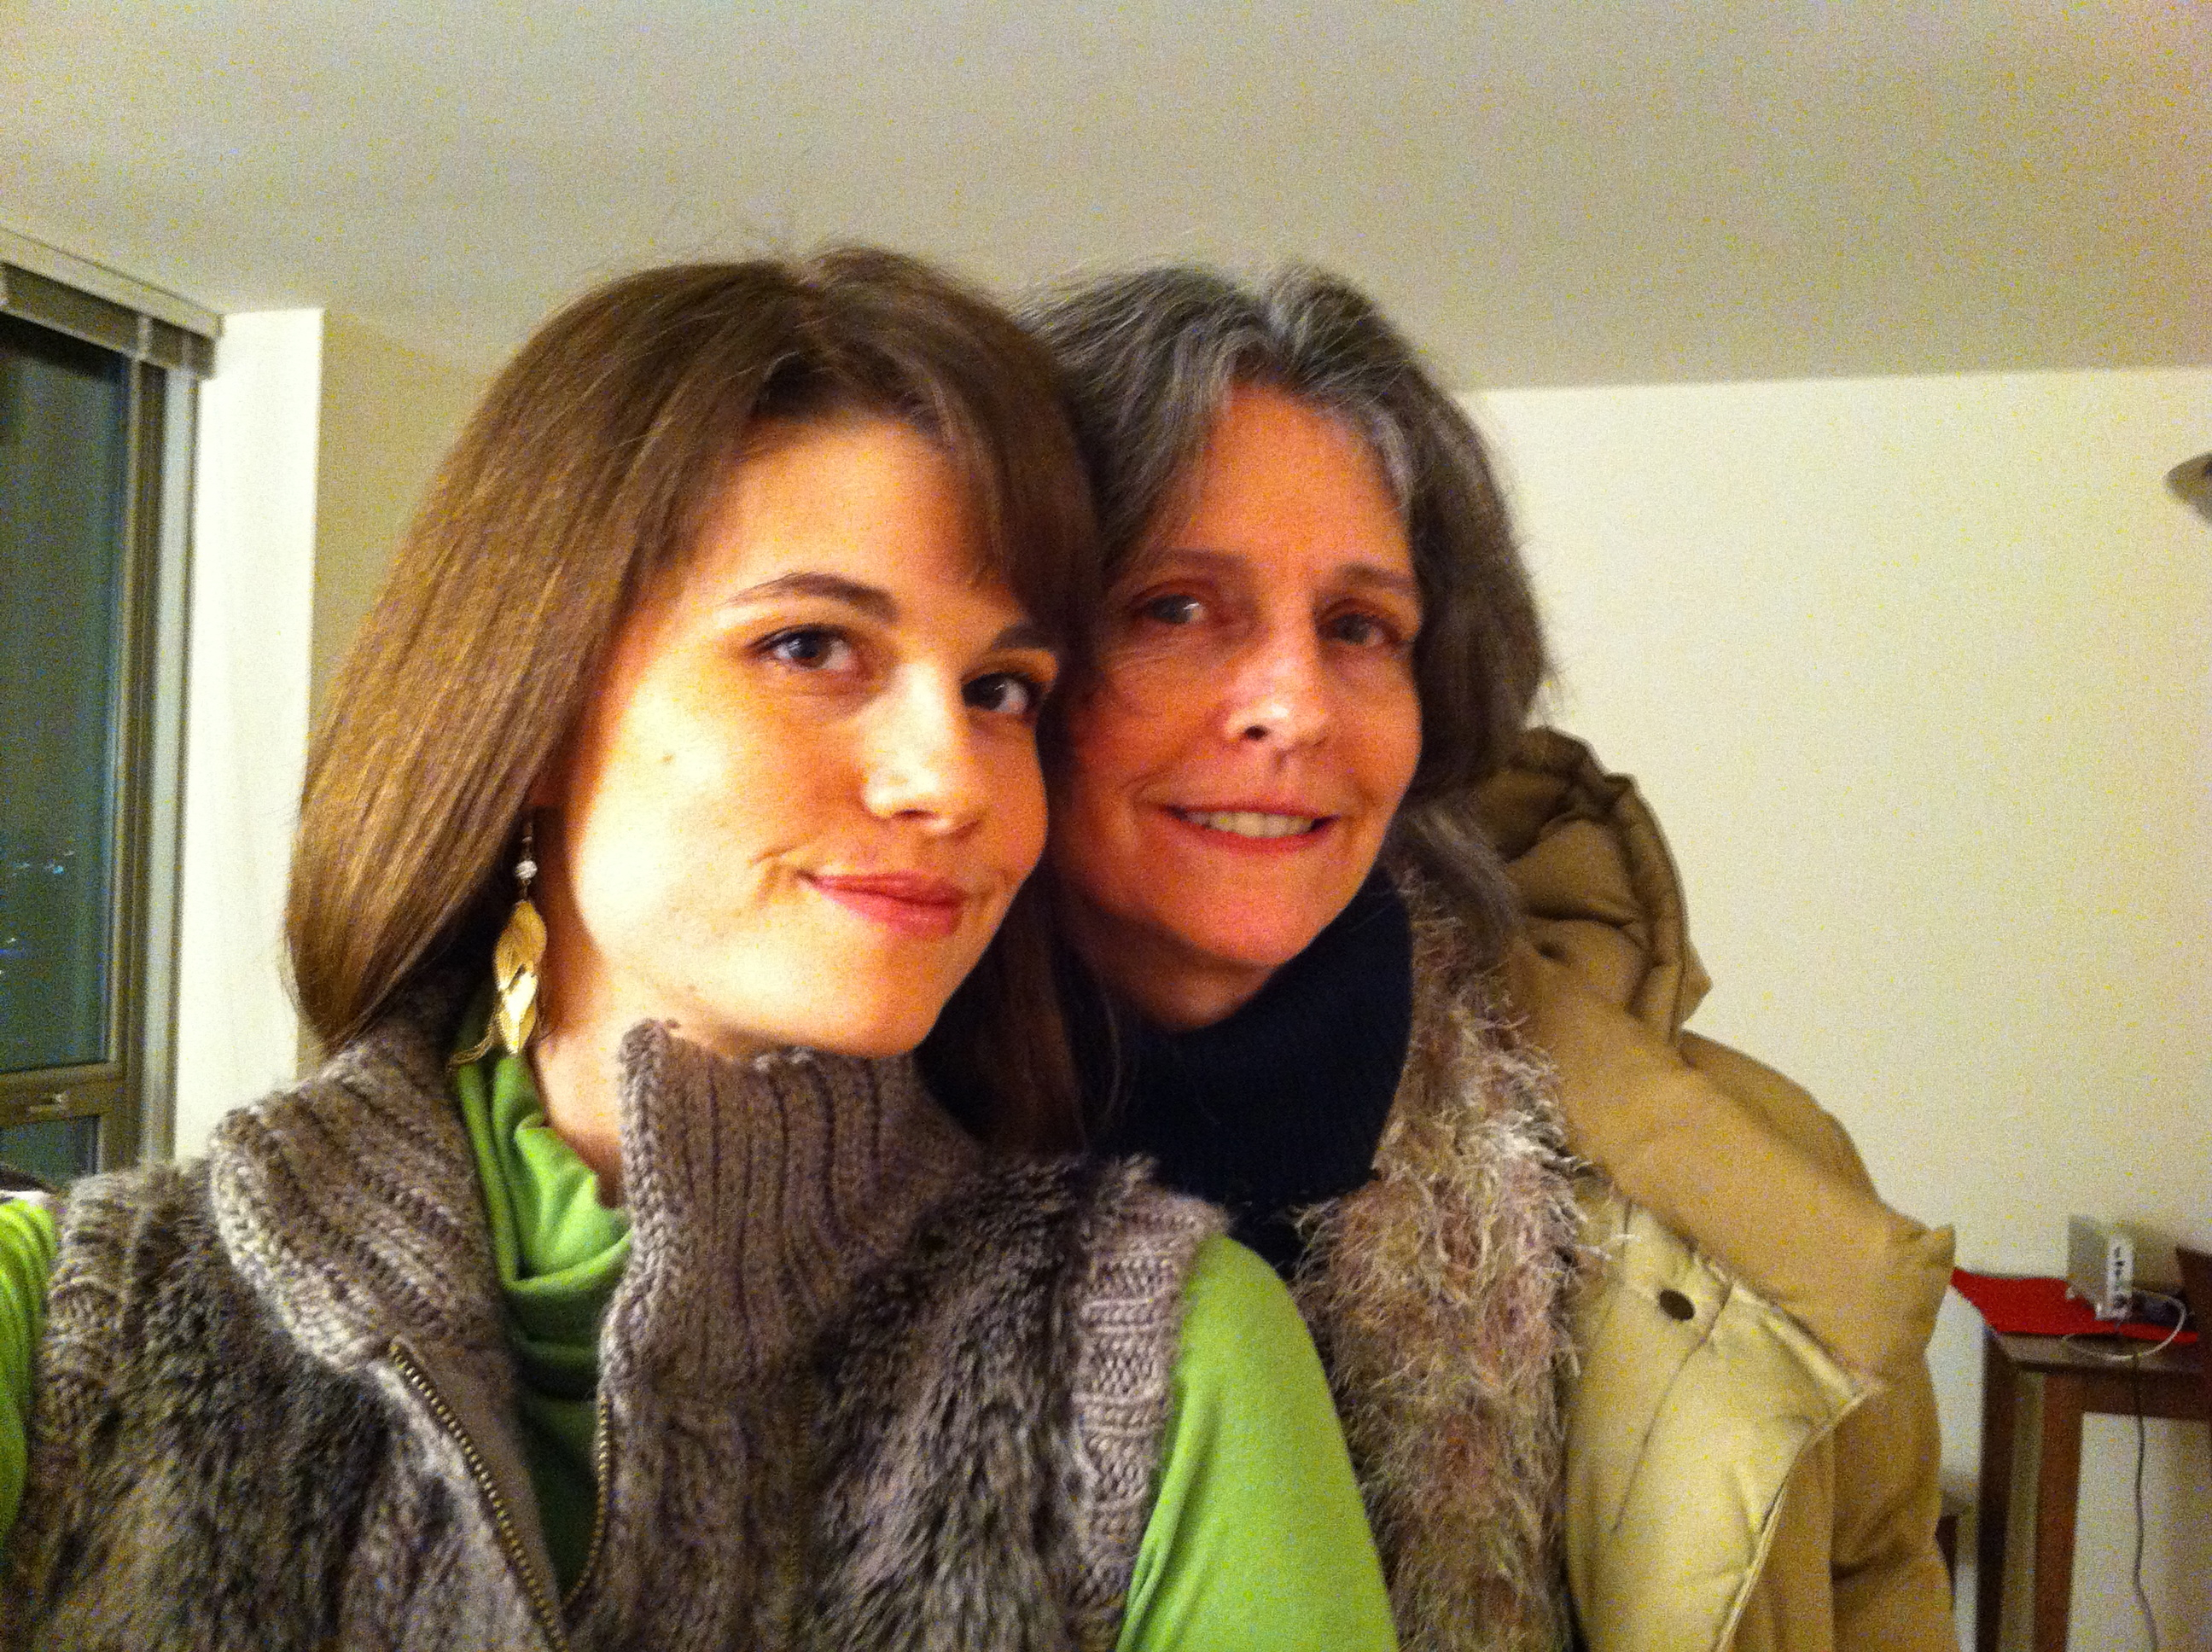 Mom and I ready to go out for New Year's partying!